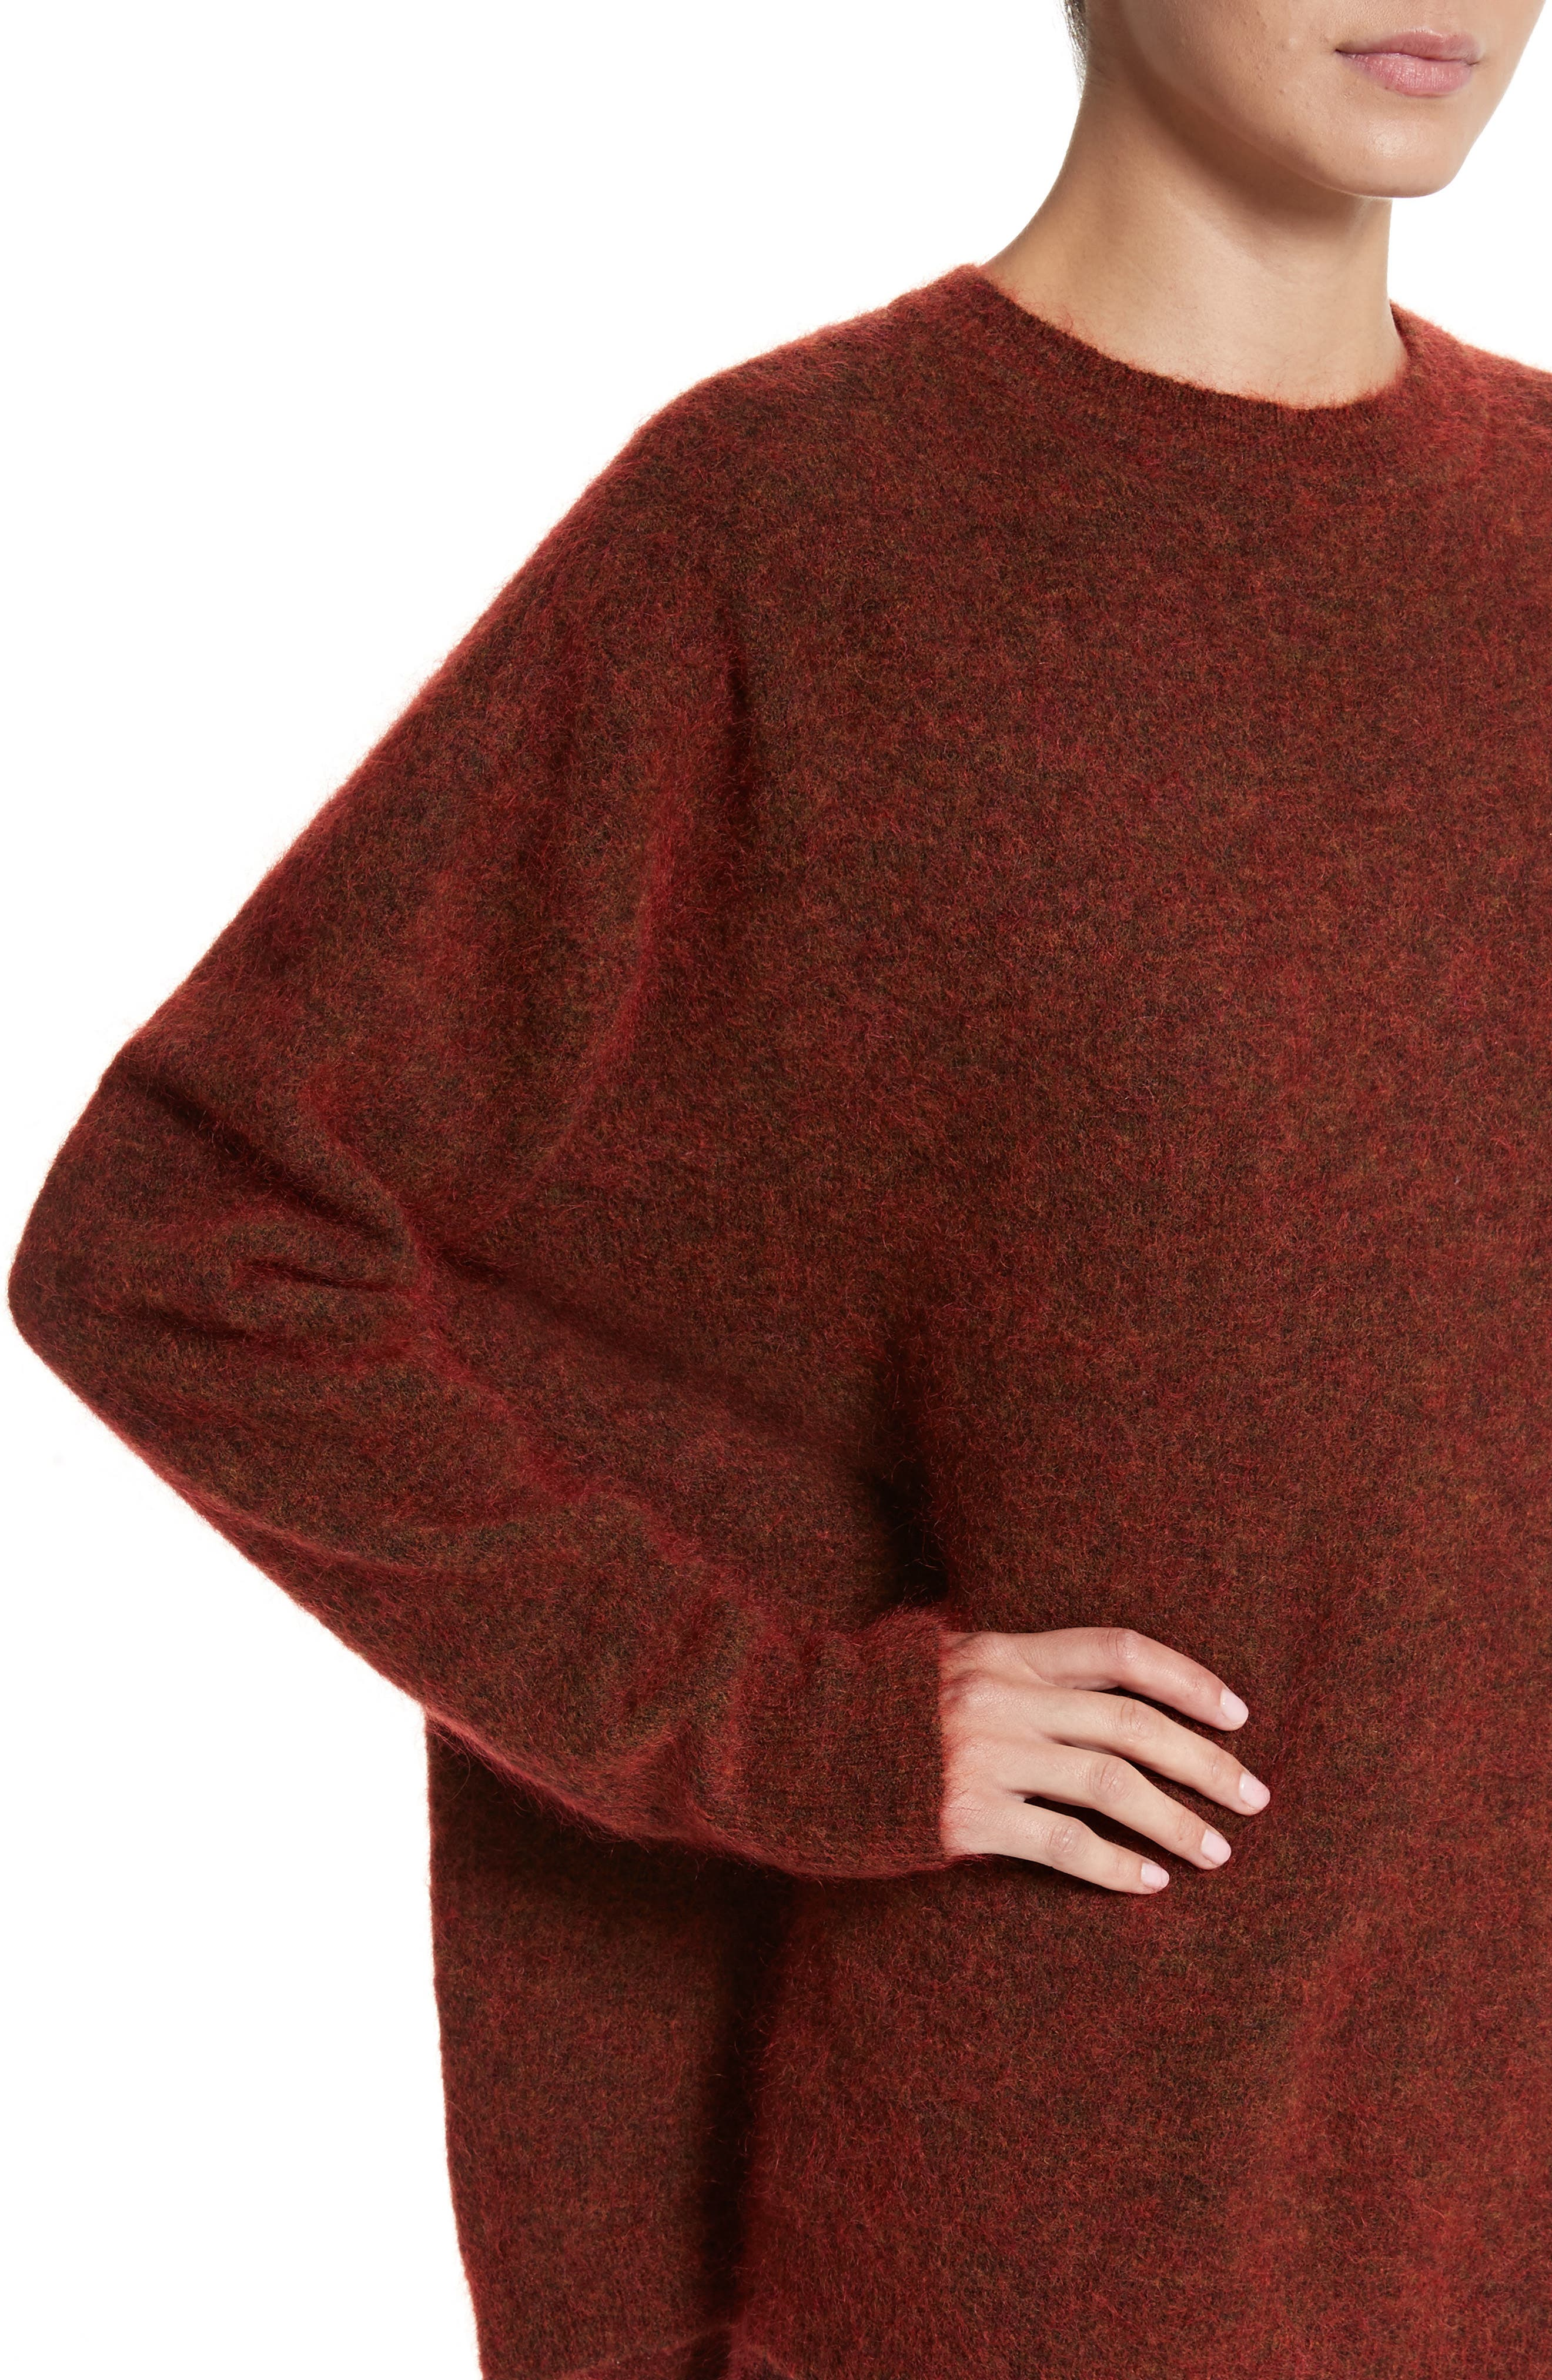 Tambourine Open Back Sweater,                             Alternate thumbnail 4, color,